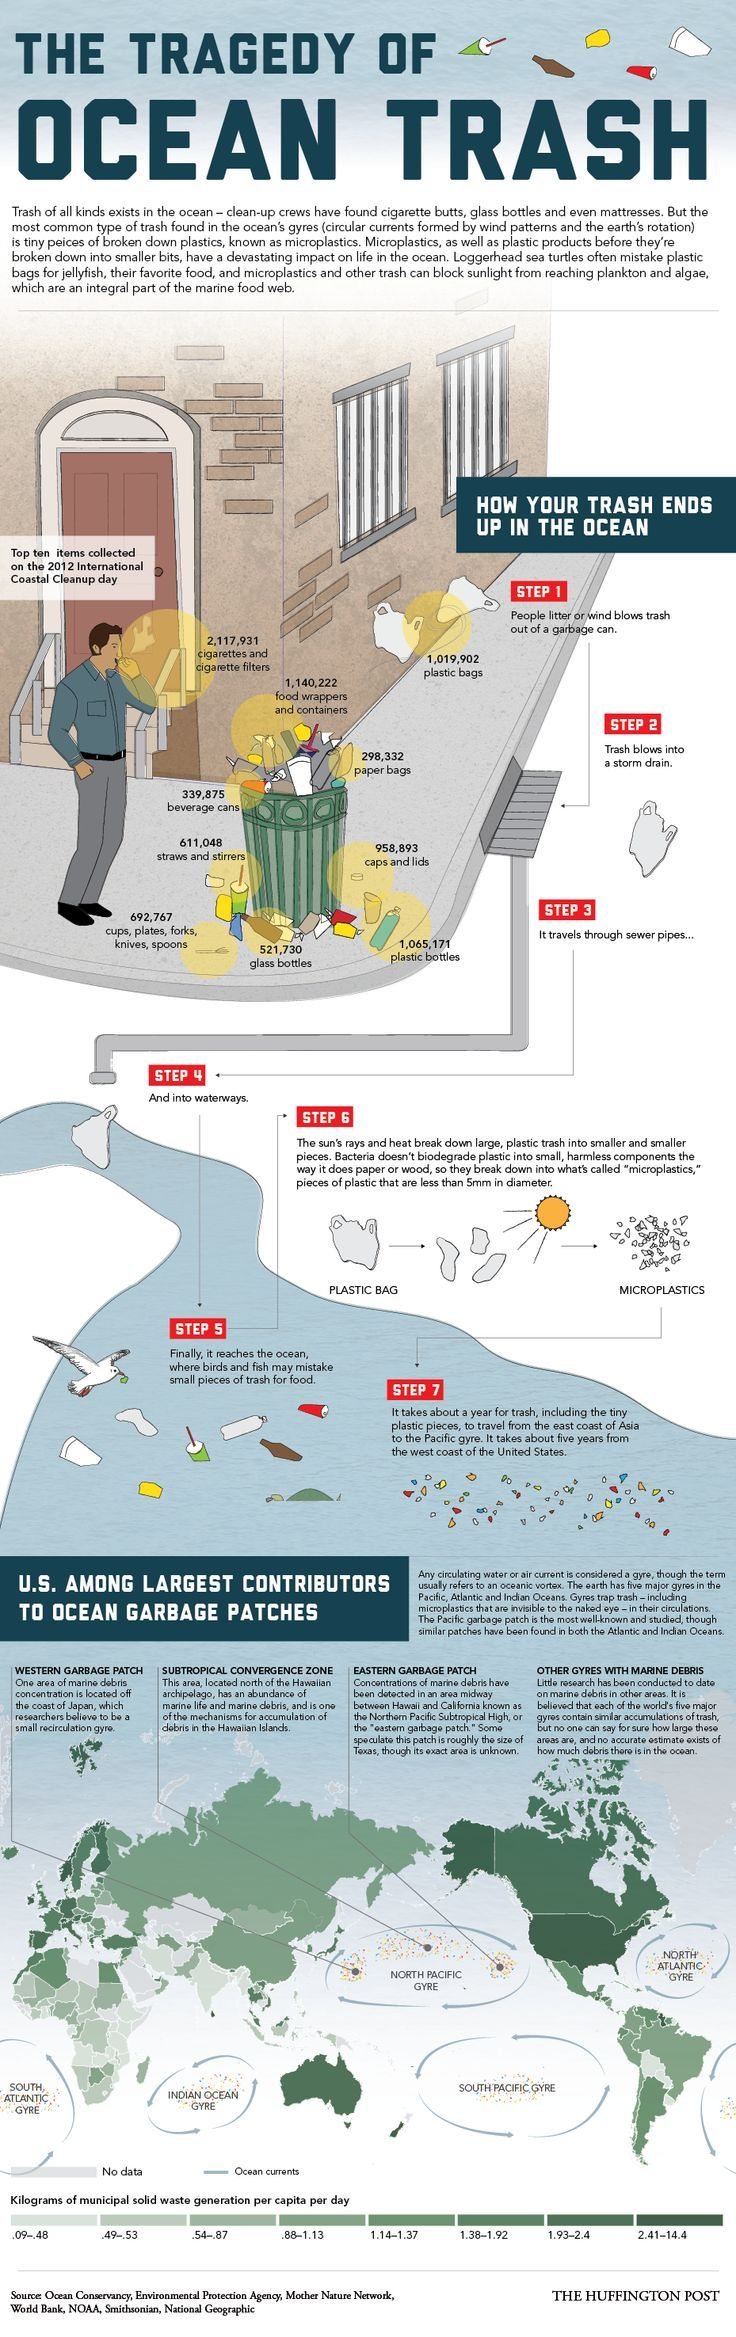 This Is How Your Plastic Bag Ends Up In Massive Ocean Garbage Patches. Be aware. Make a Change. #EarthDay